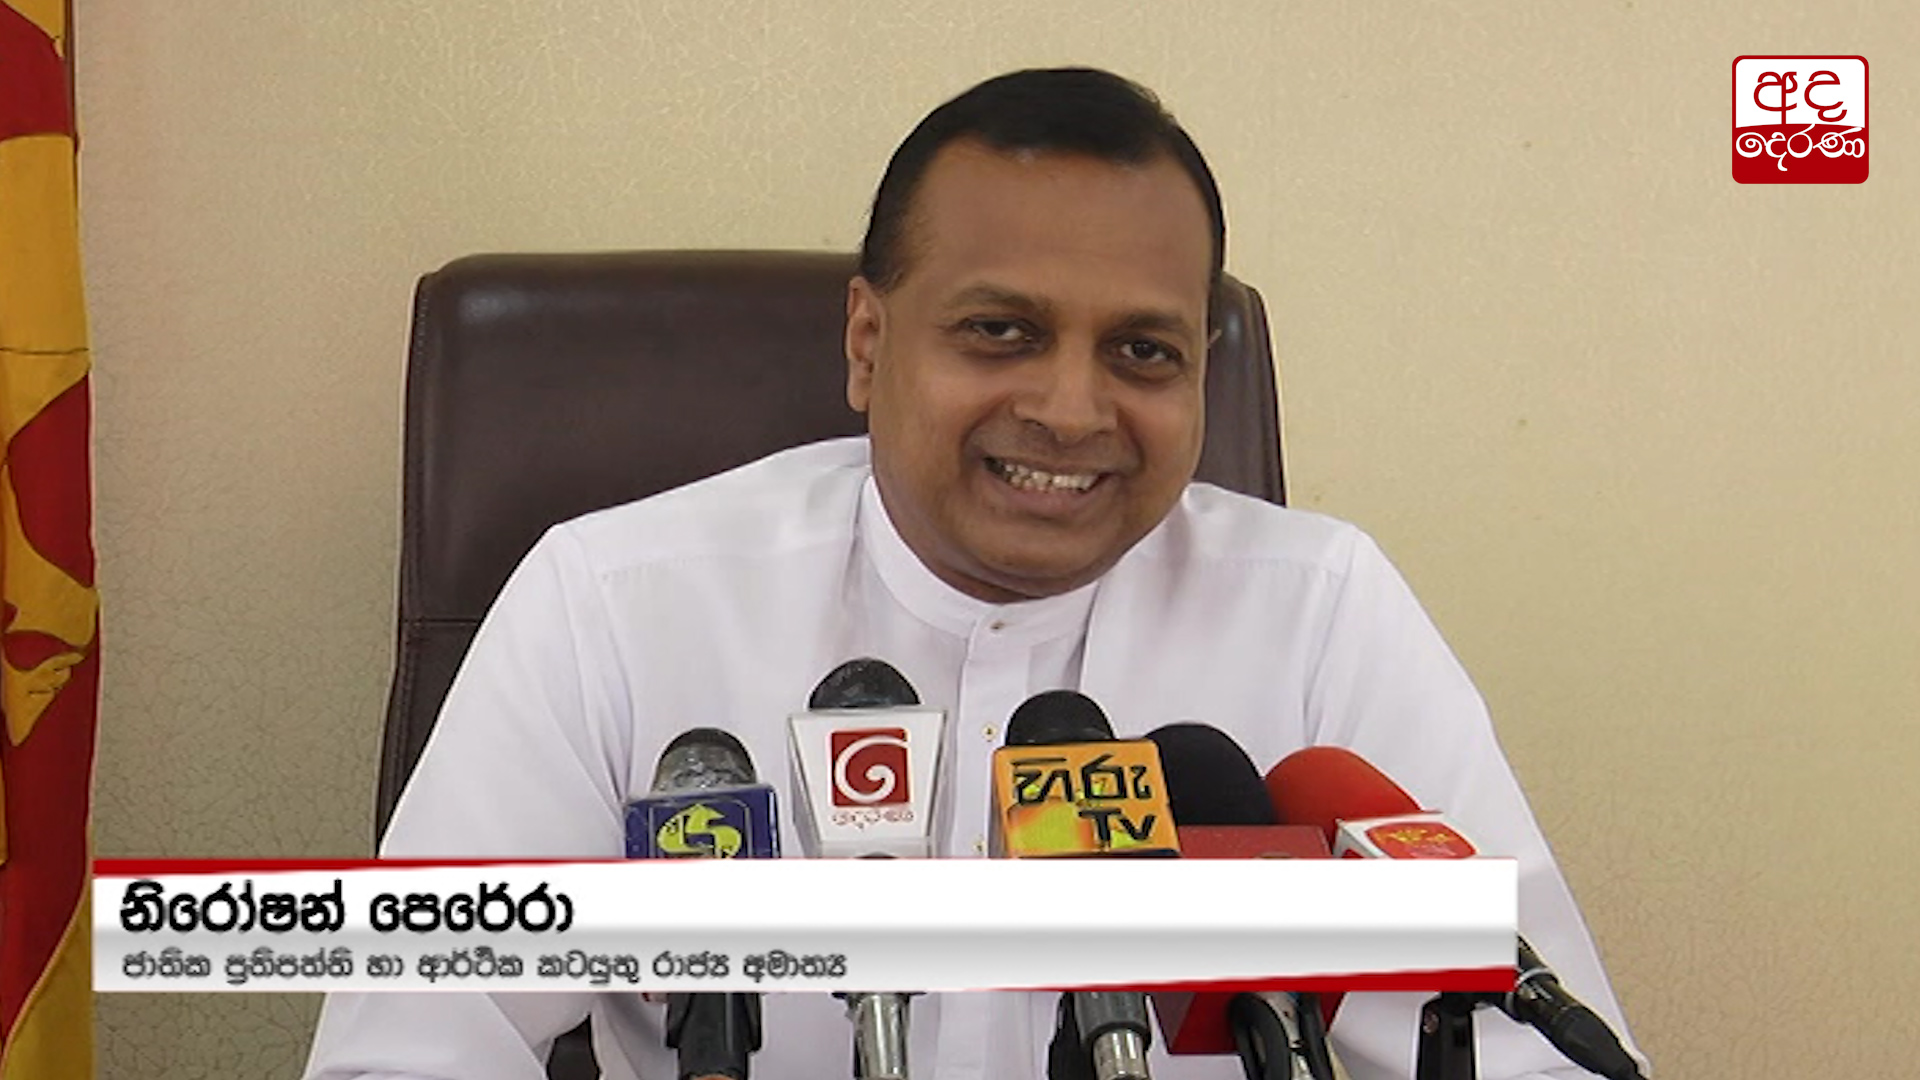 I asked for justice on Easter attacks - Niroshan Perera